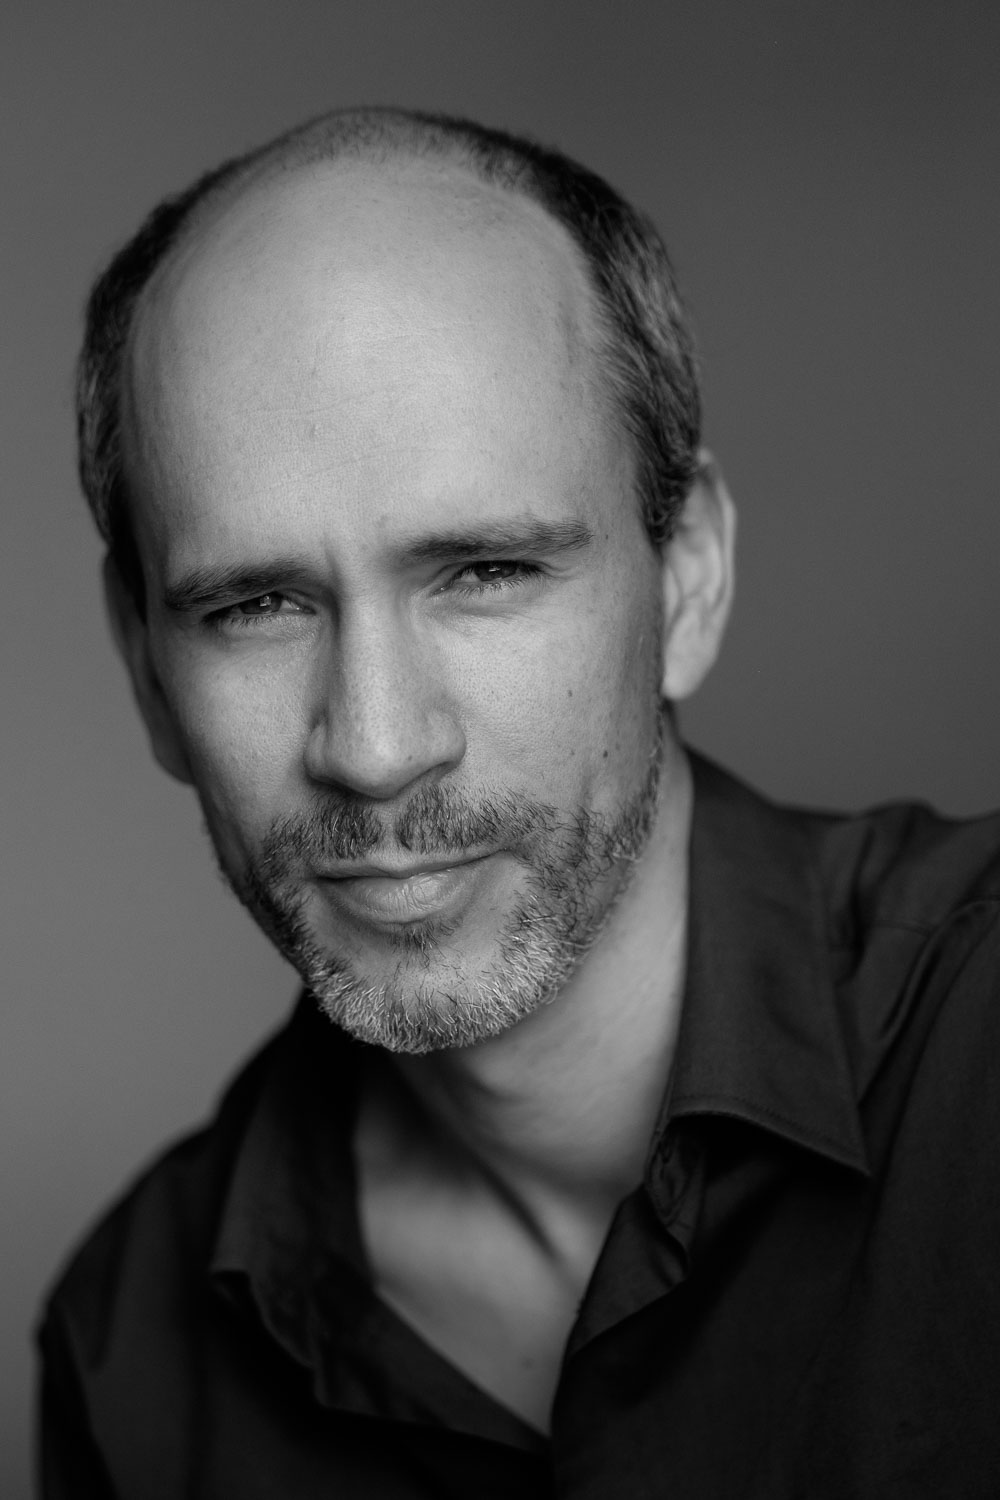 A headshot photograph of stratford actor Joseph Reany by Scott Williams.